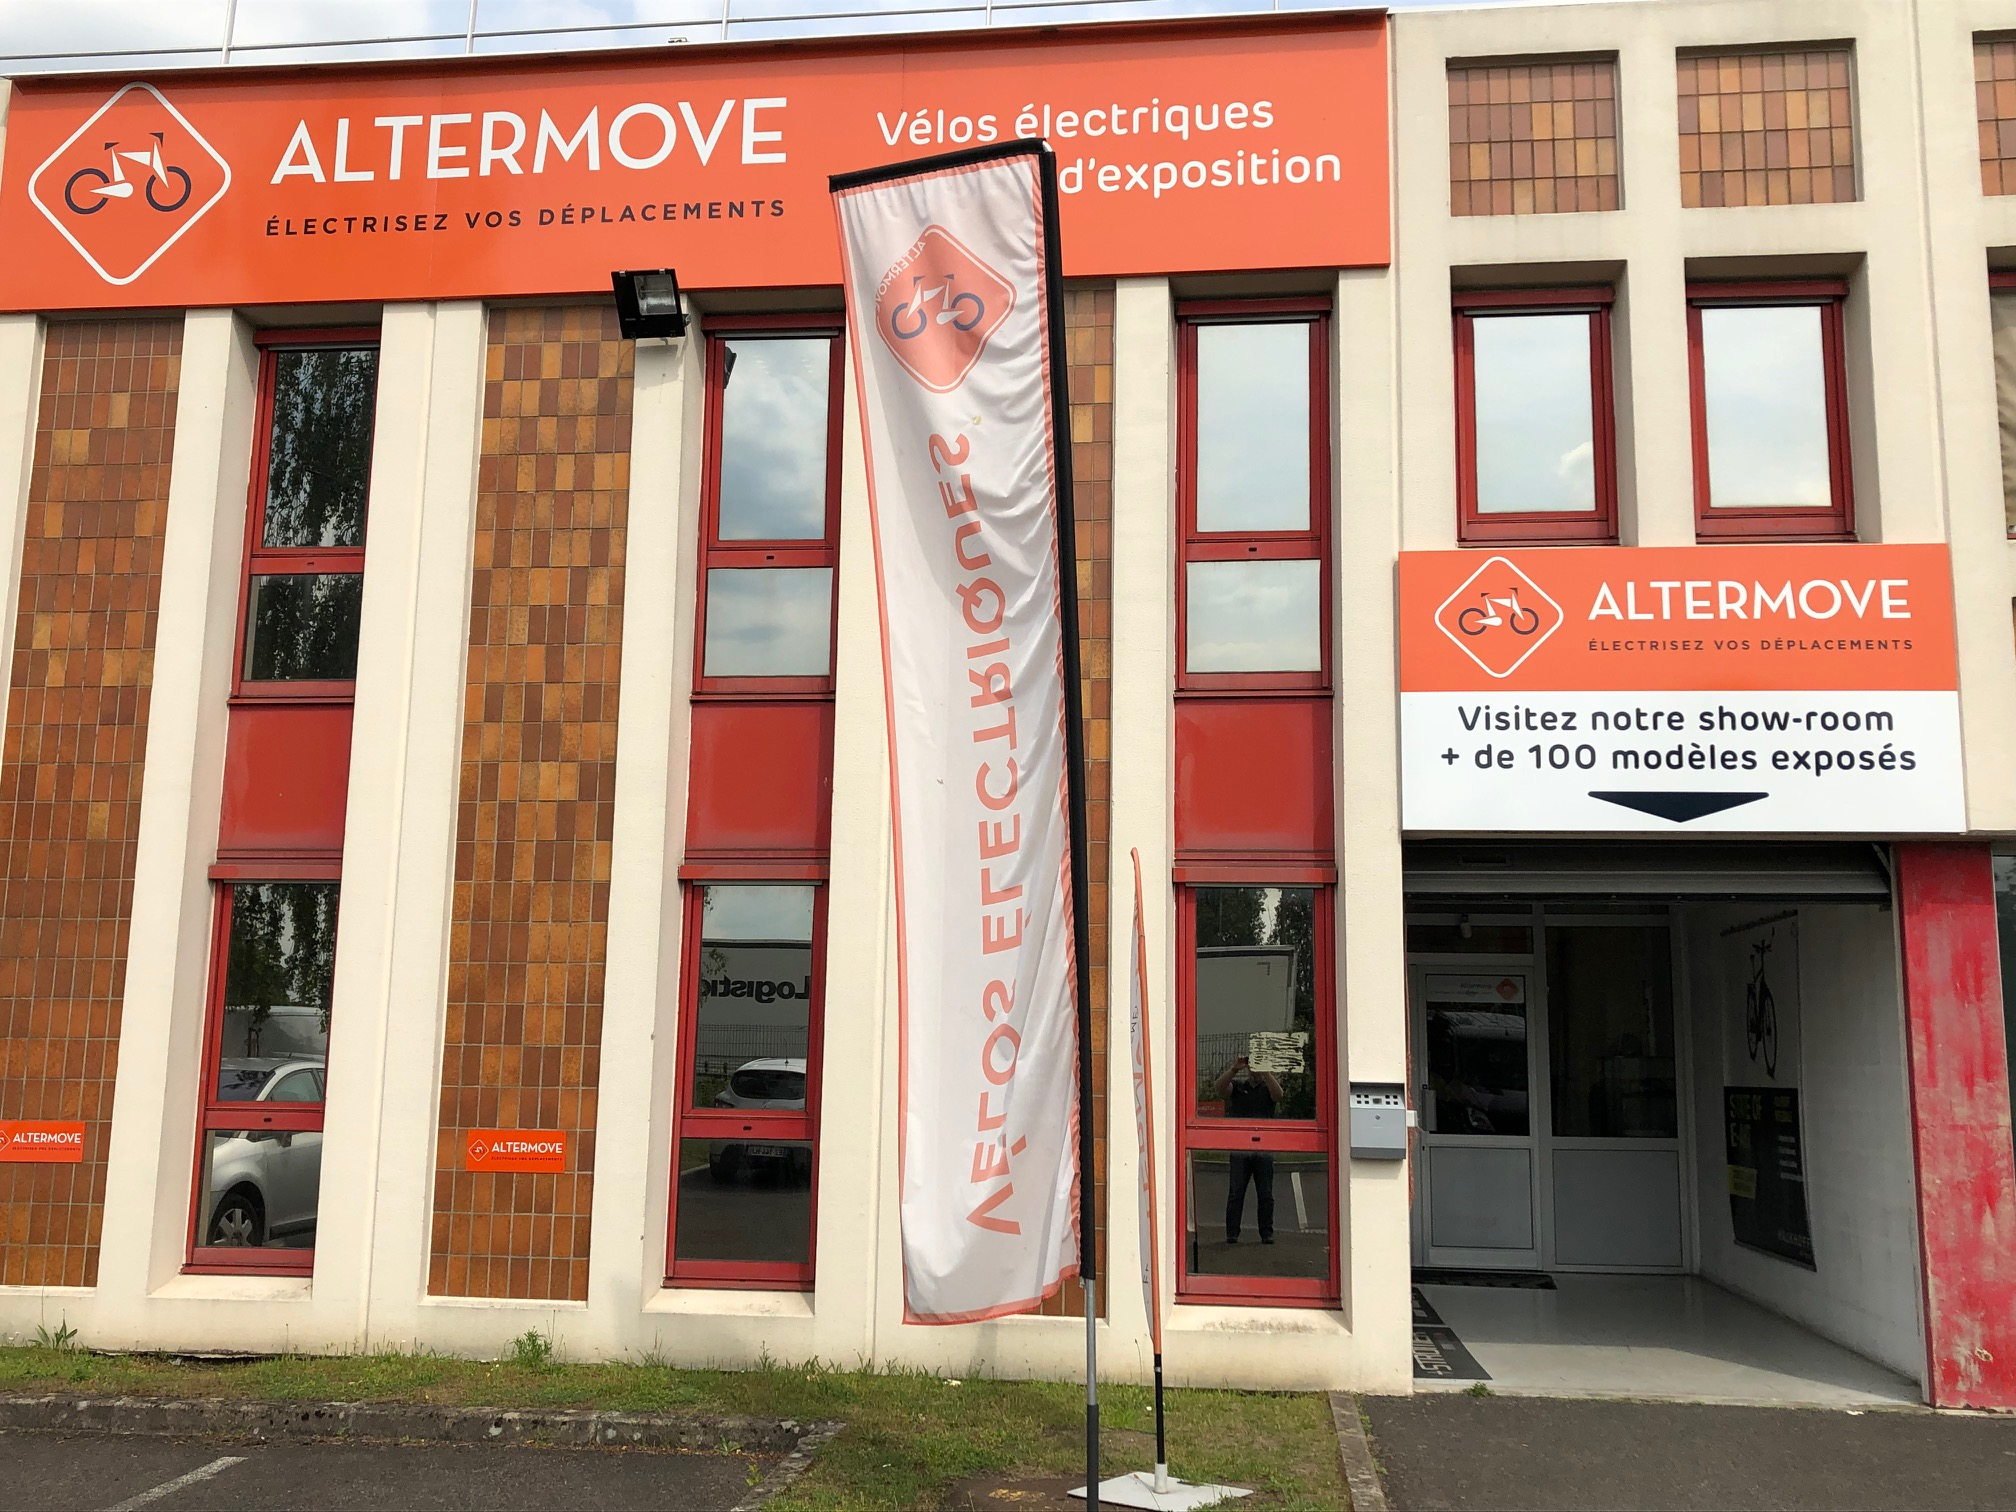 Altermove Cergy Pontoise- velo electrique Paris- Ile de France